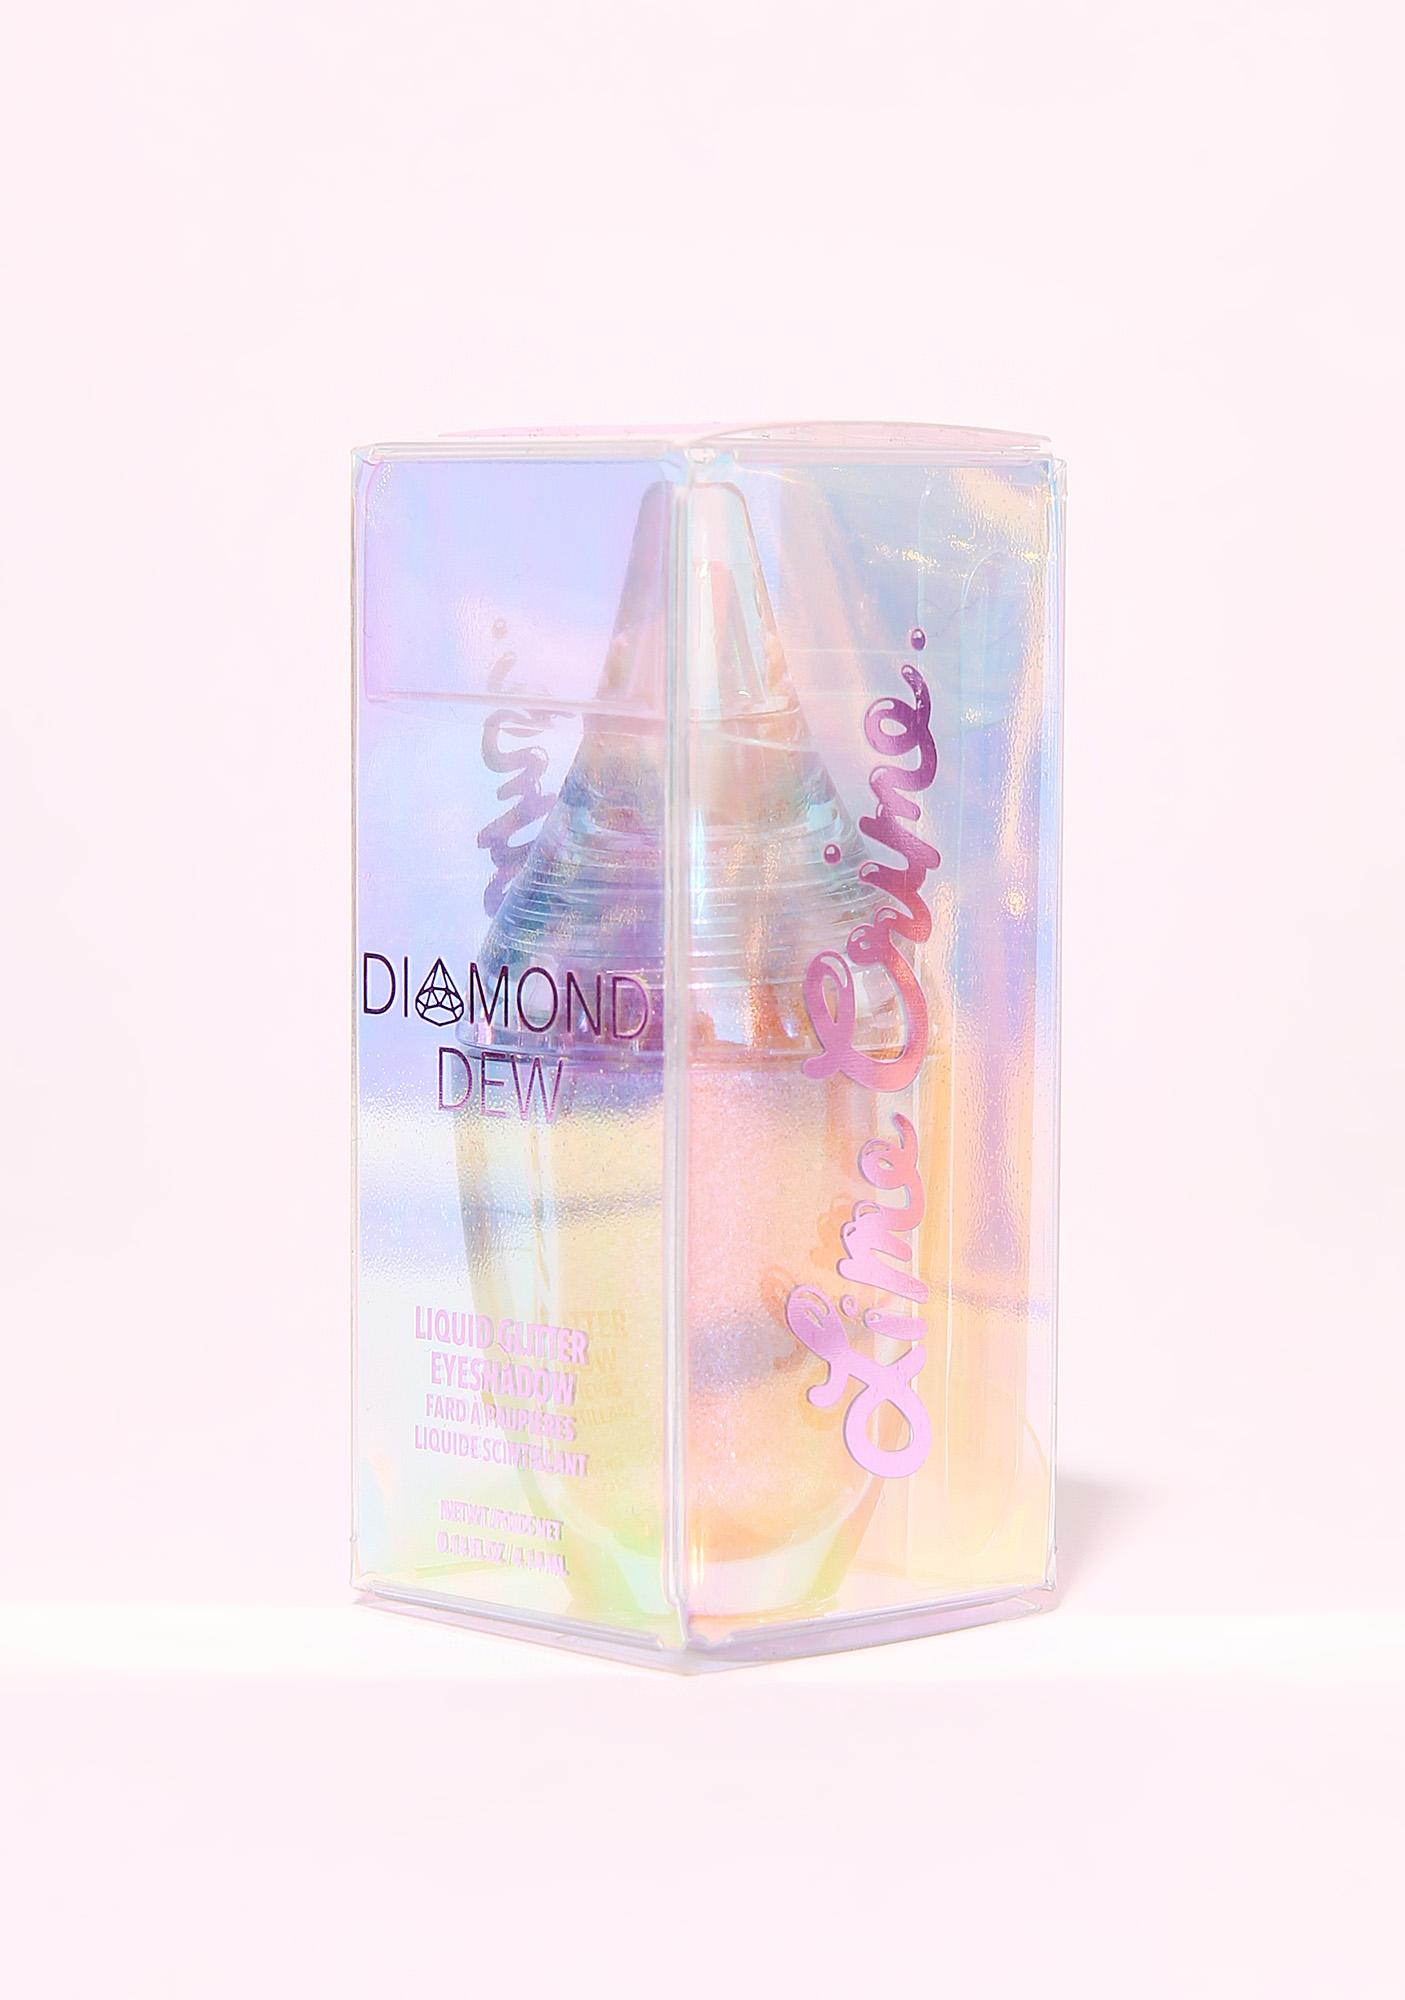 Lime Crime Dragon Diamond Dew